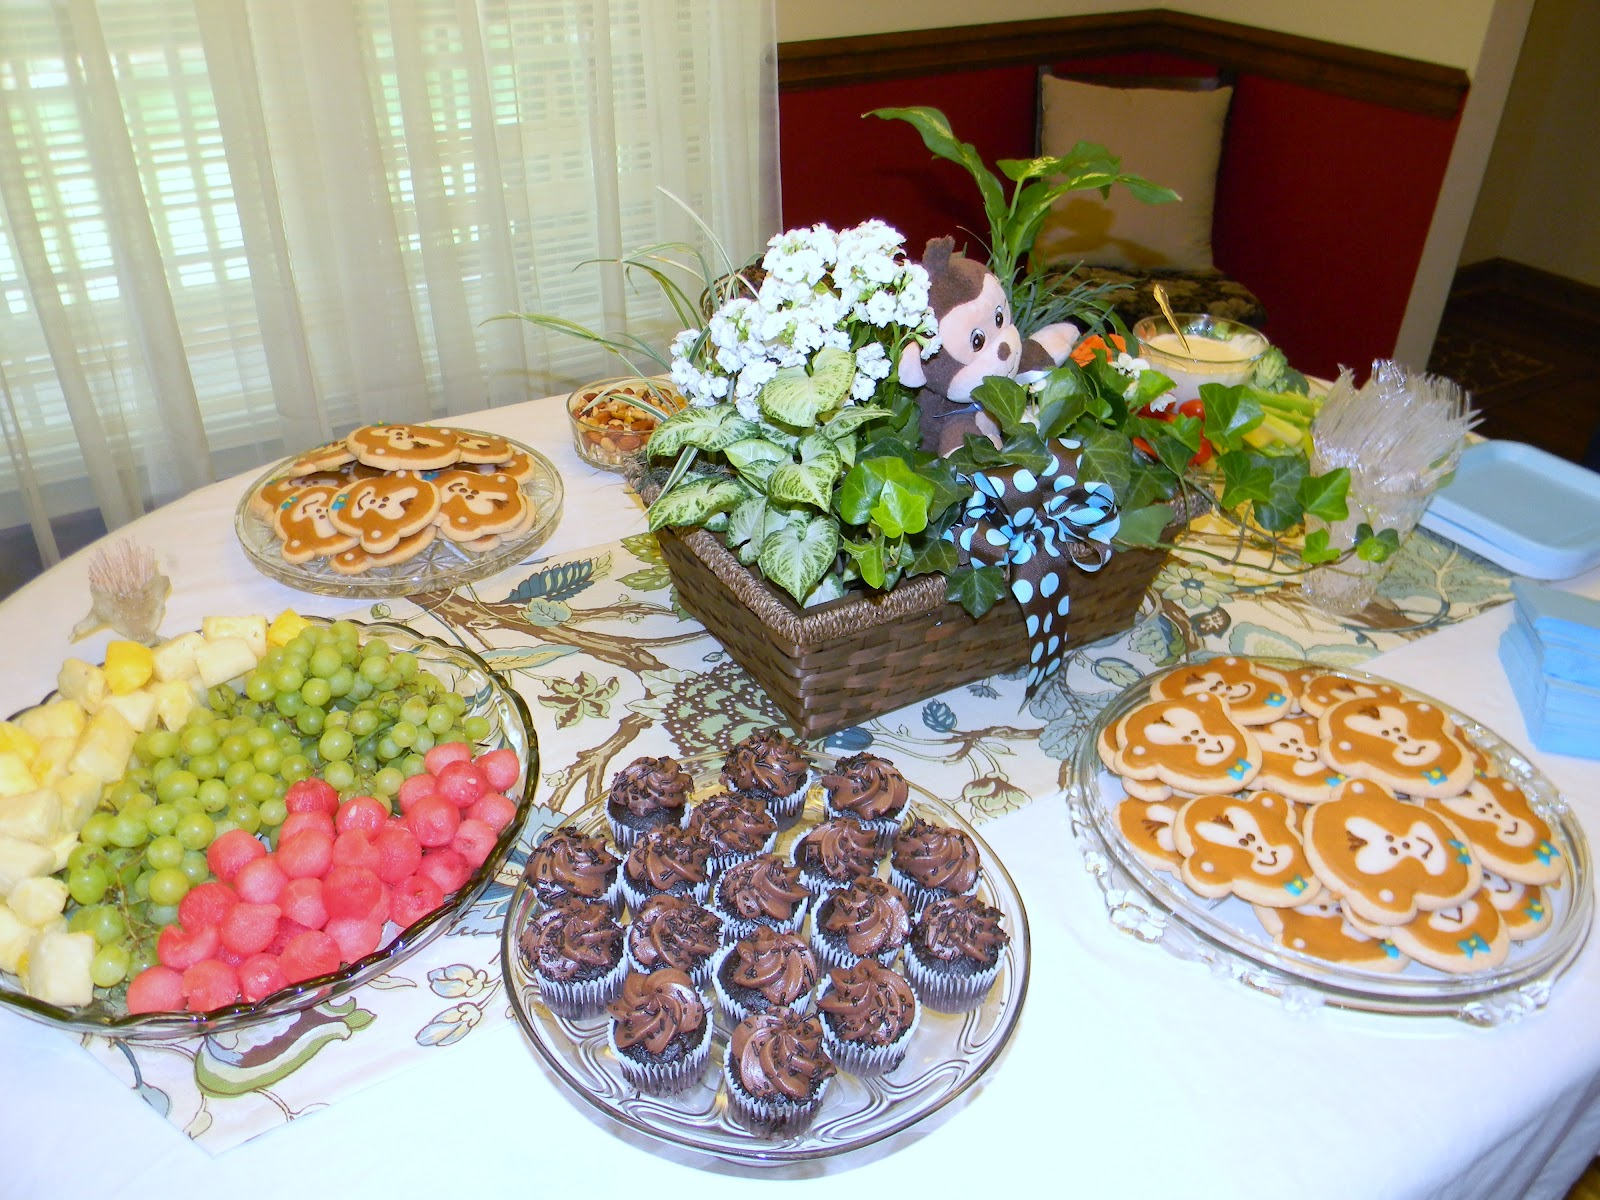 Baby Shower Food Ideas: Baby Shower Finger Food Ideas On A